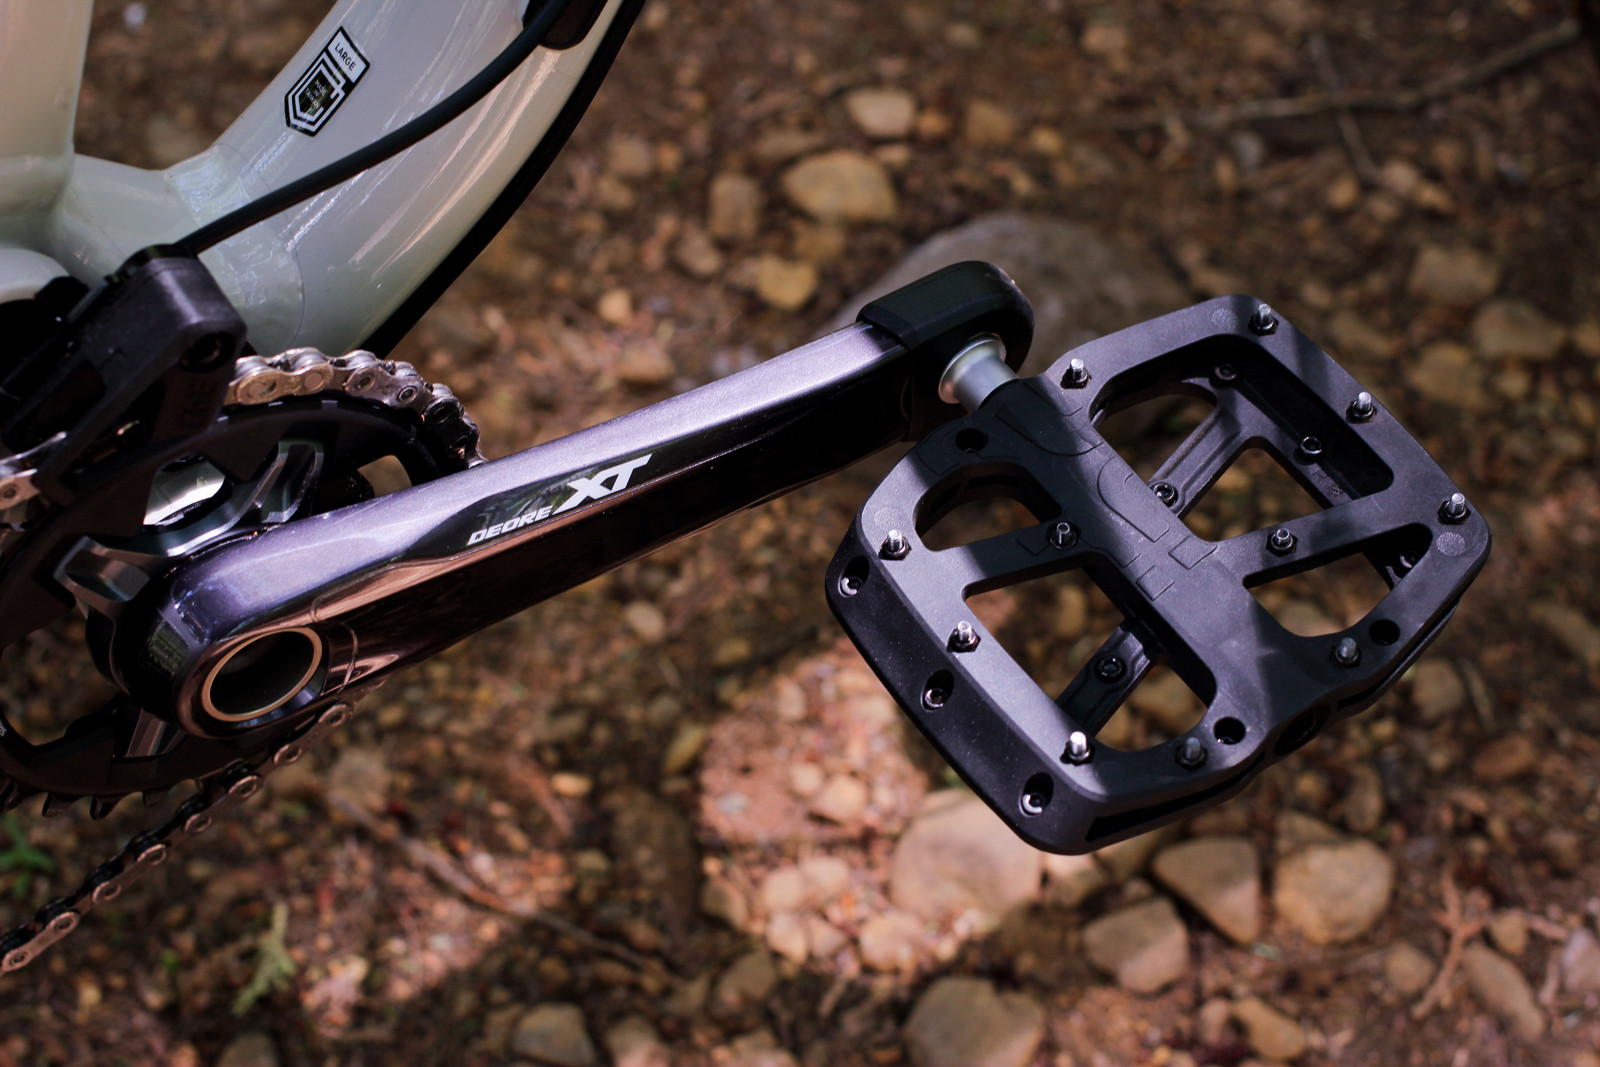 Almost perfect composite pedals